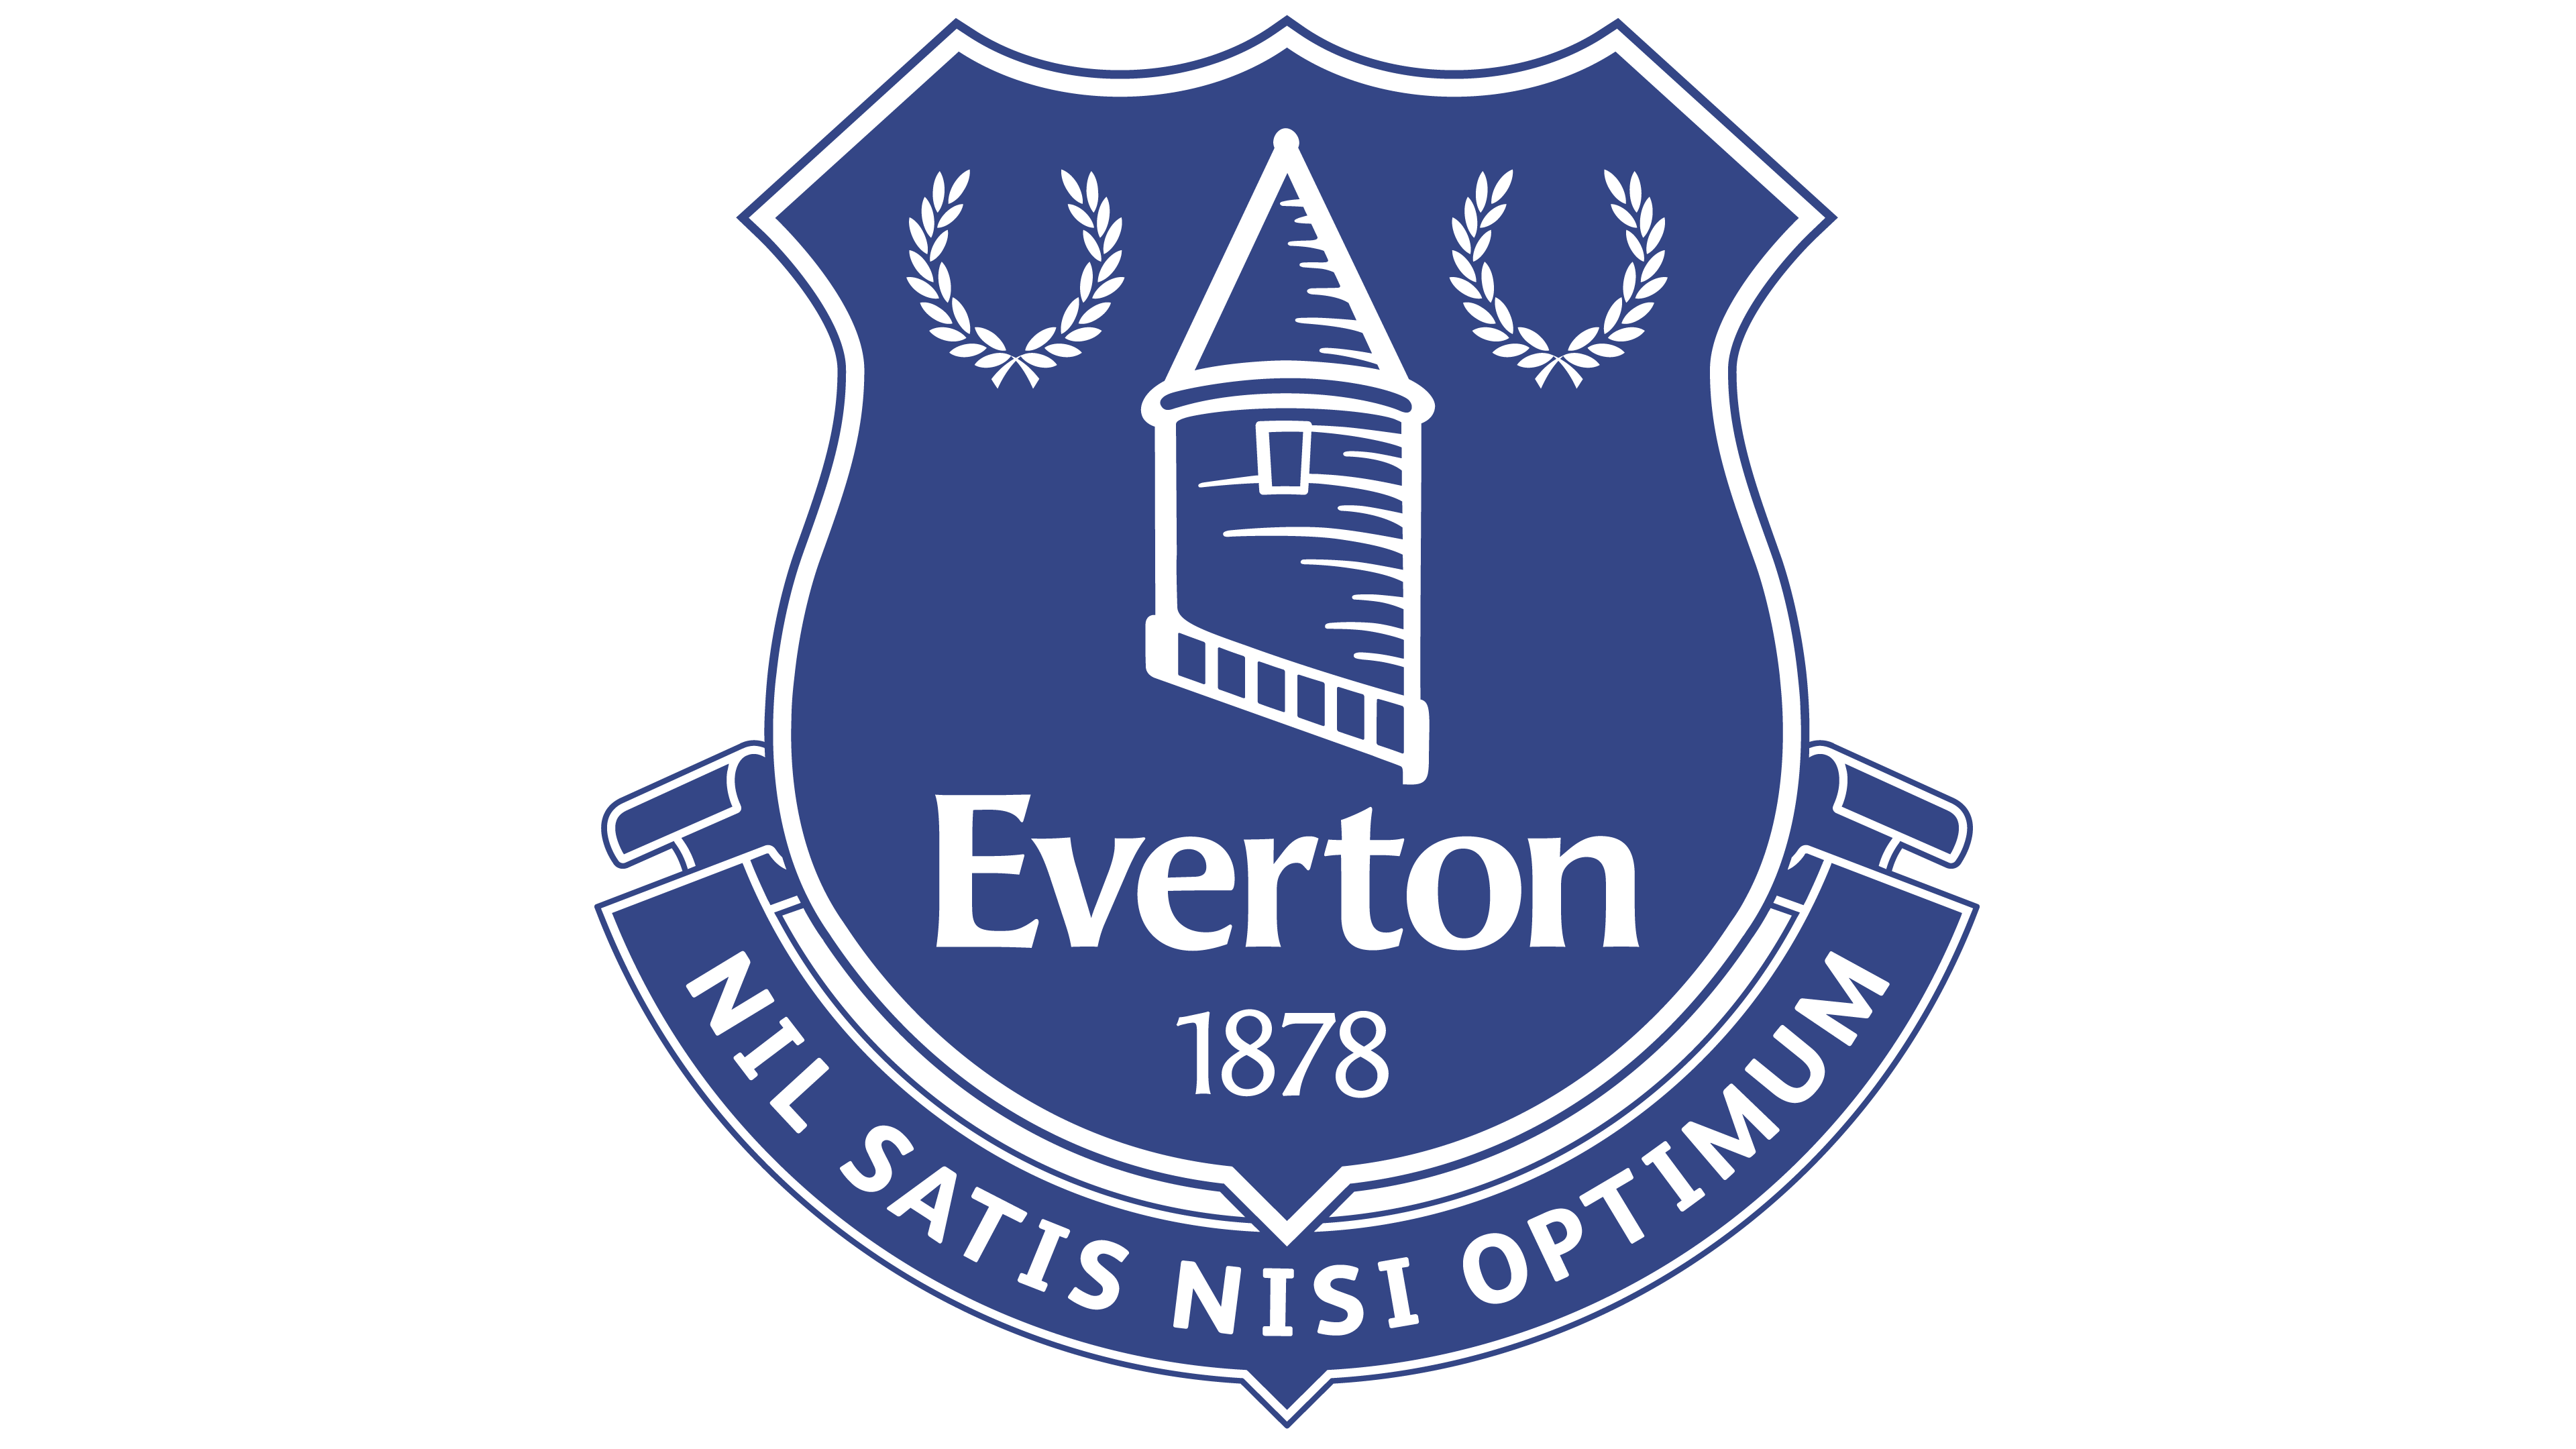 Everton crest download free clip art with a transparent.